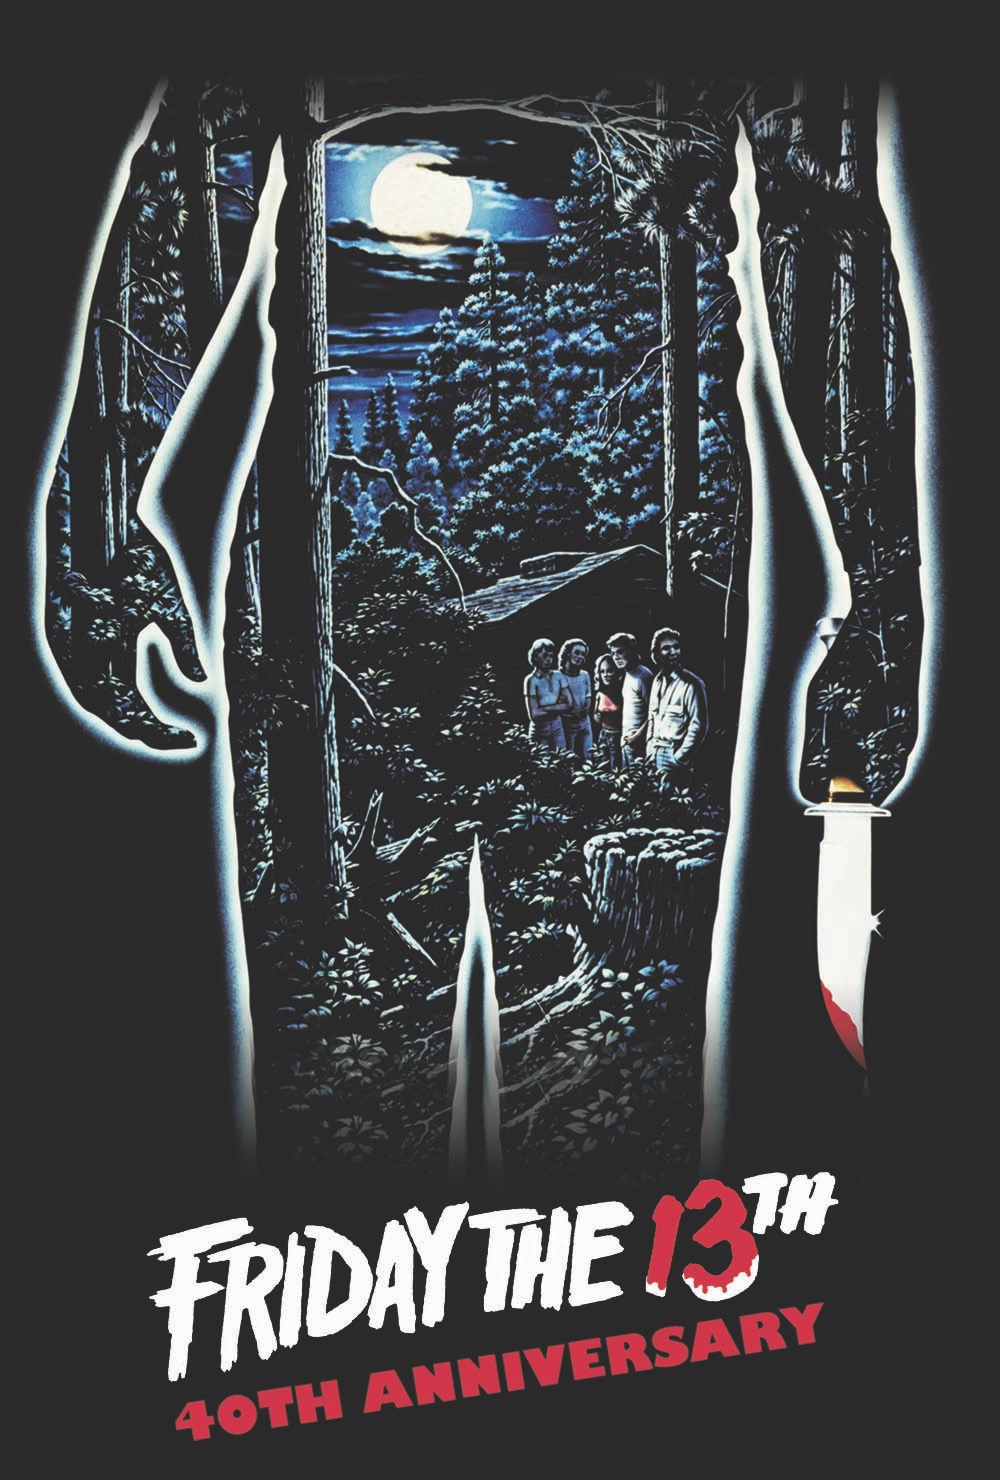 Friday the 13th 40th Anniversary Restored and Remastered